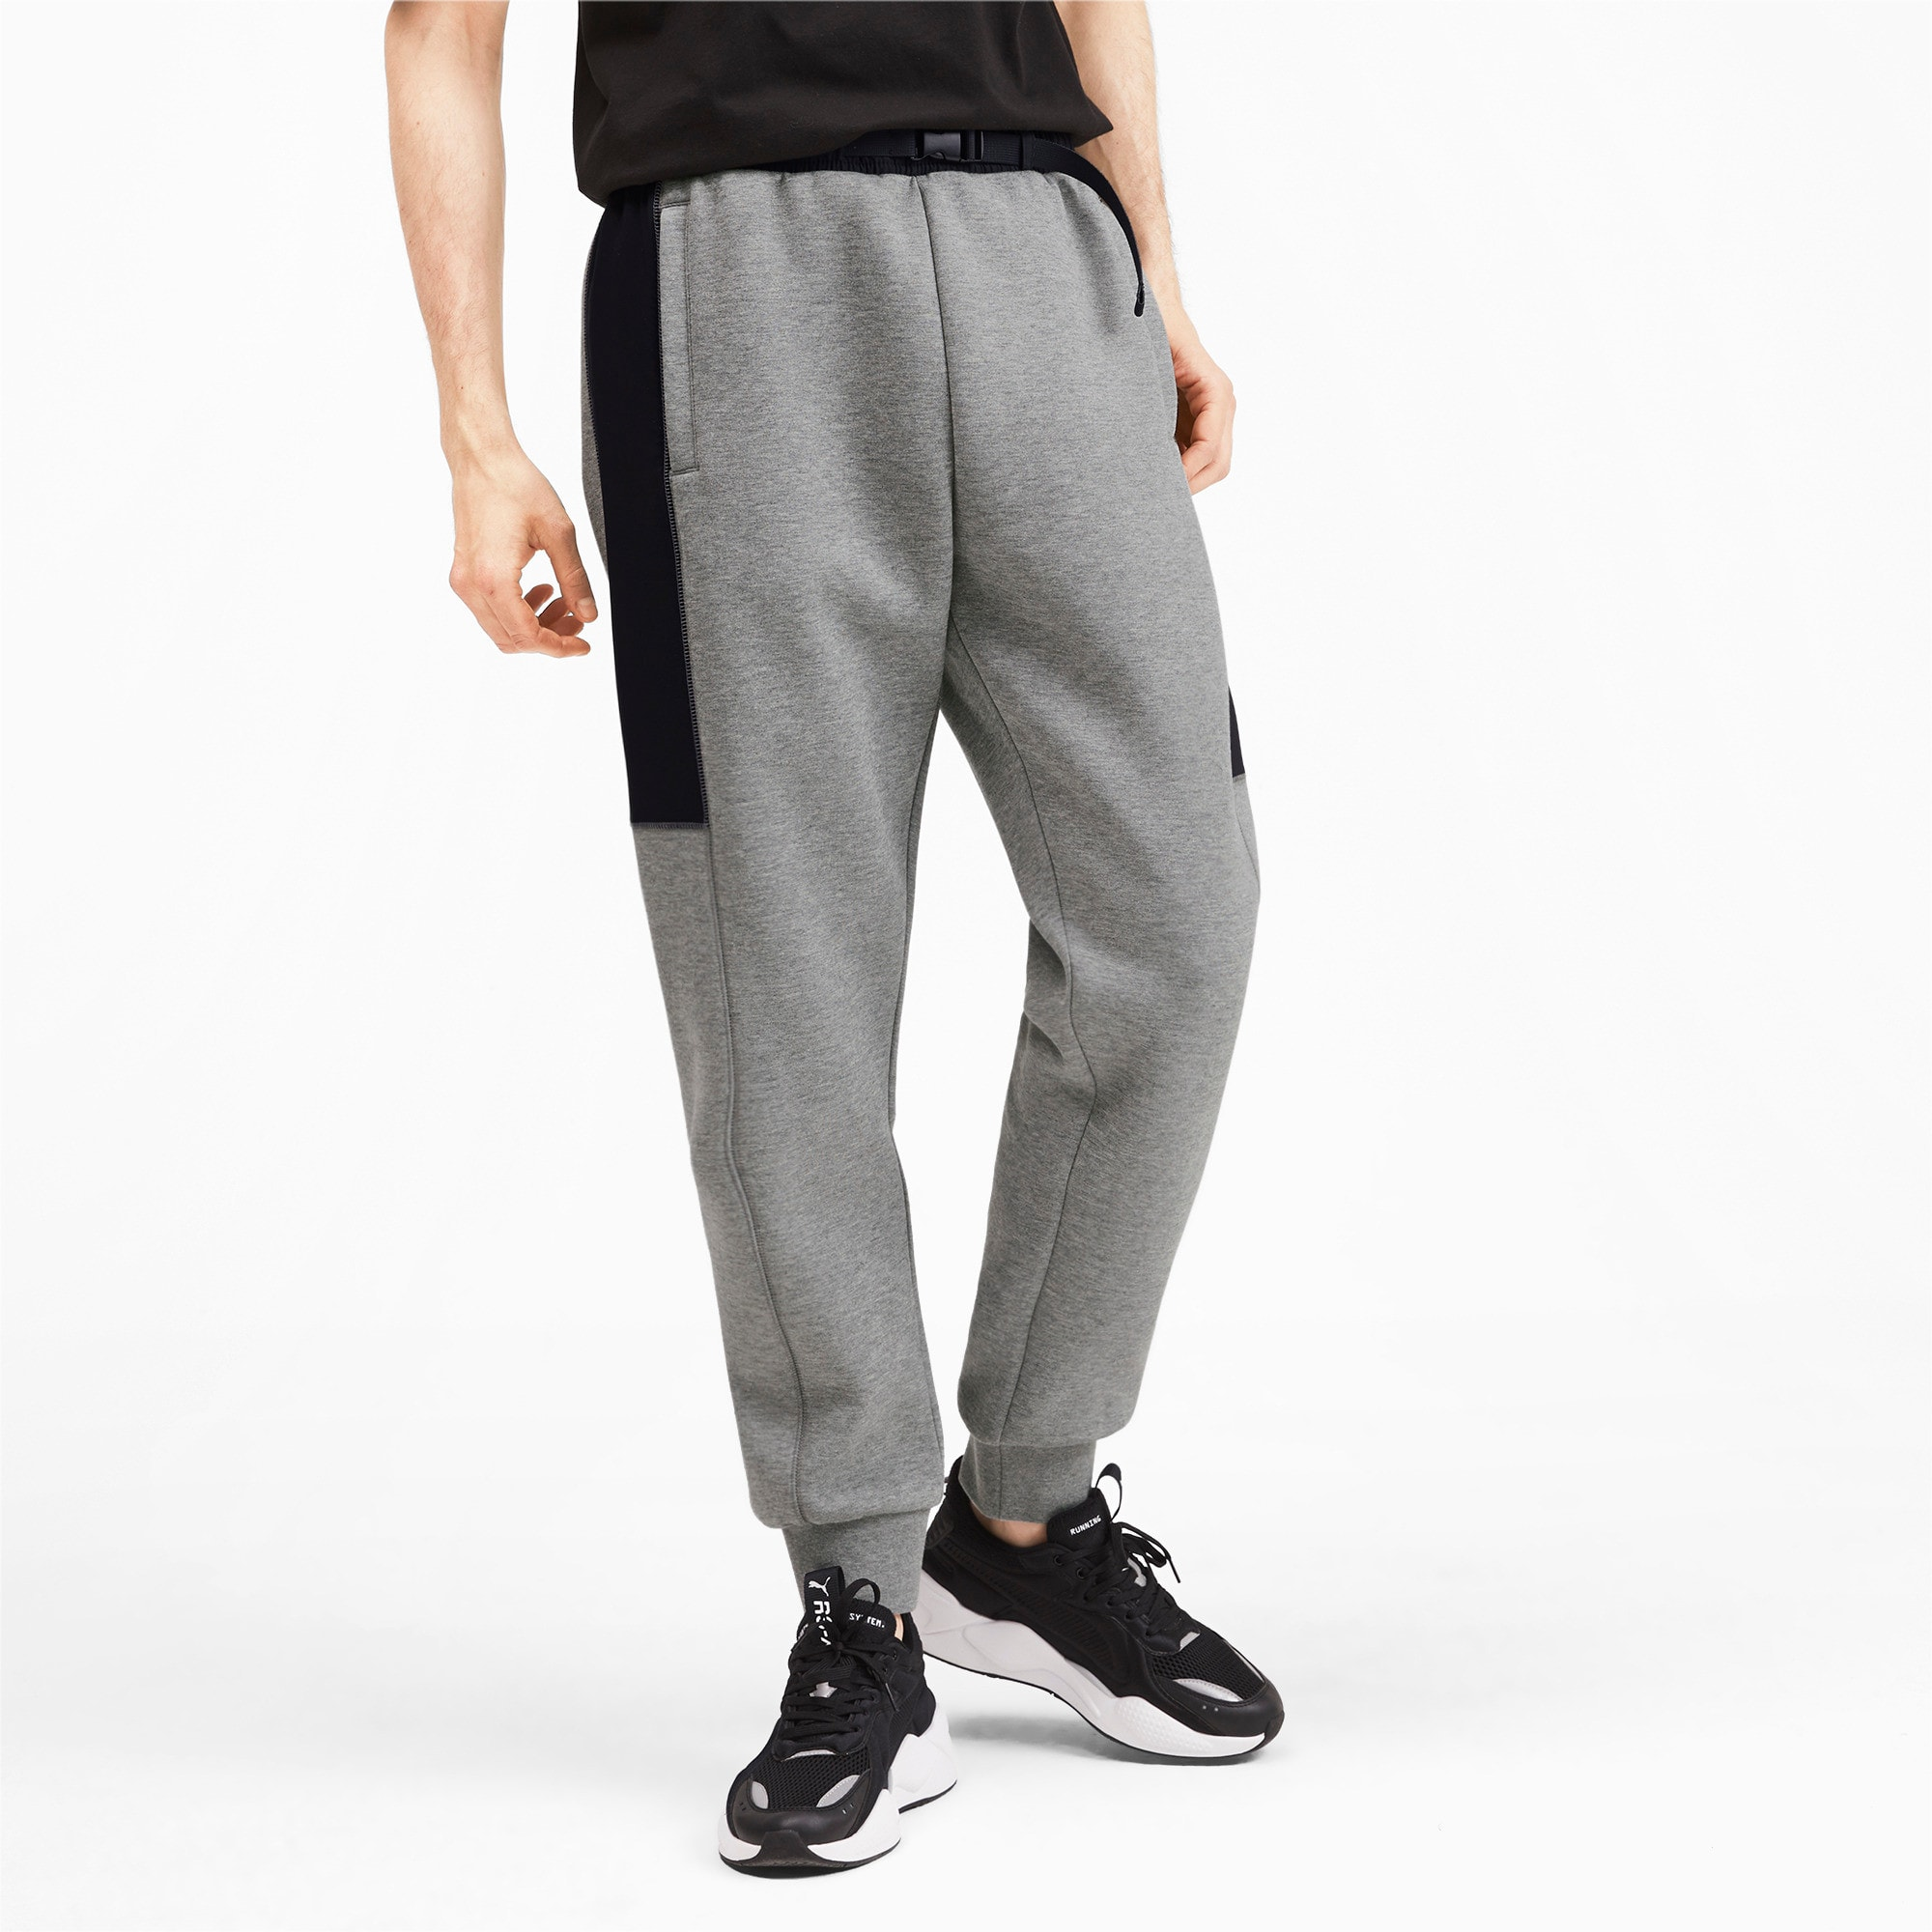 Thumbnail 2 of Epoch Hybrid Men's Sweatpants, Medium Gray Heather, medium